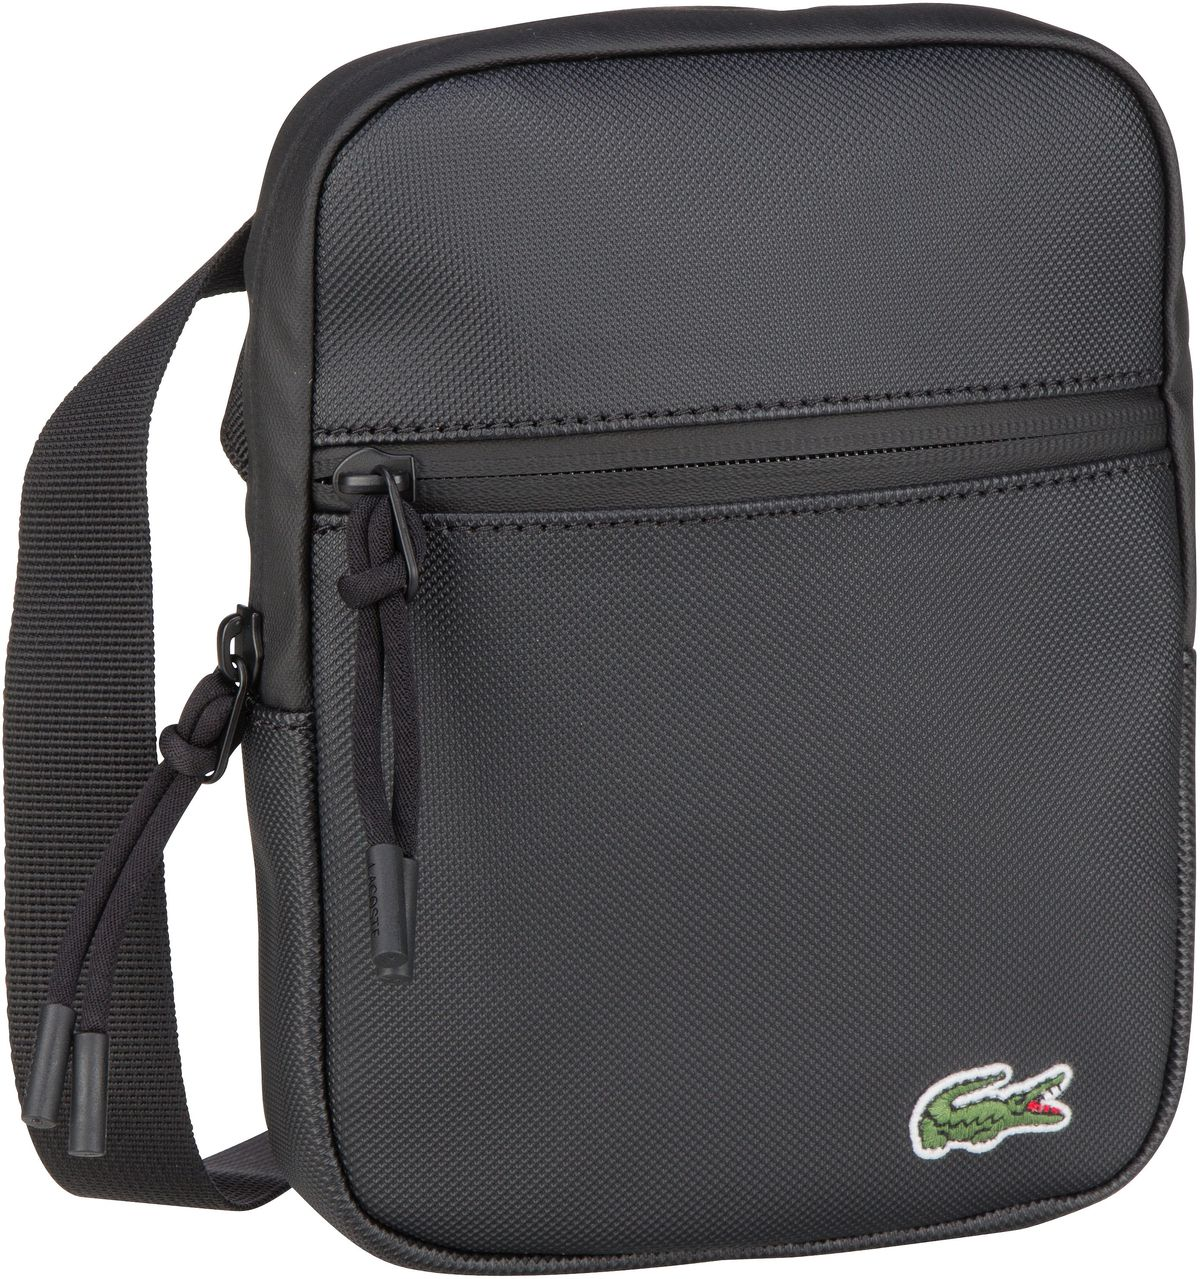 Umhängetasche LCST Crossover Bag 3307 Black